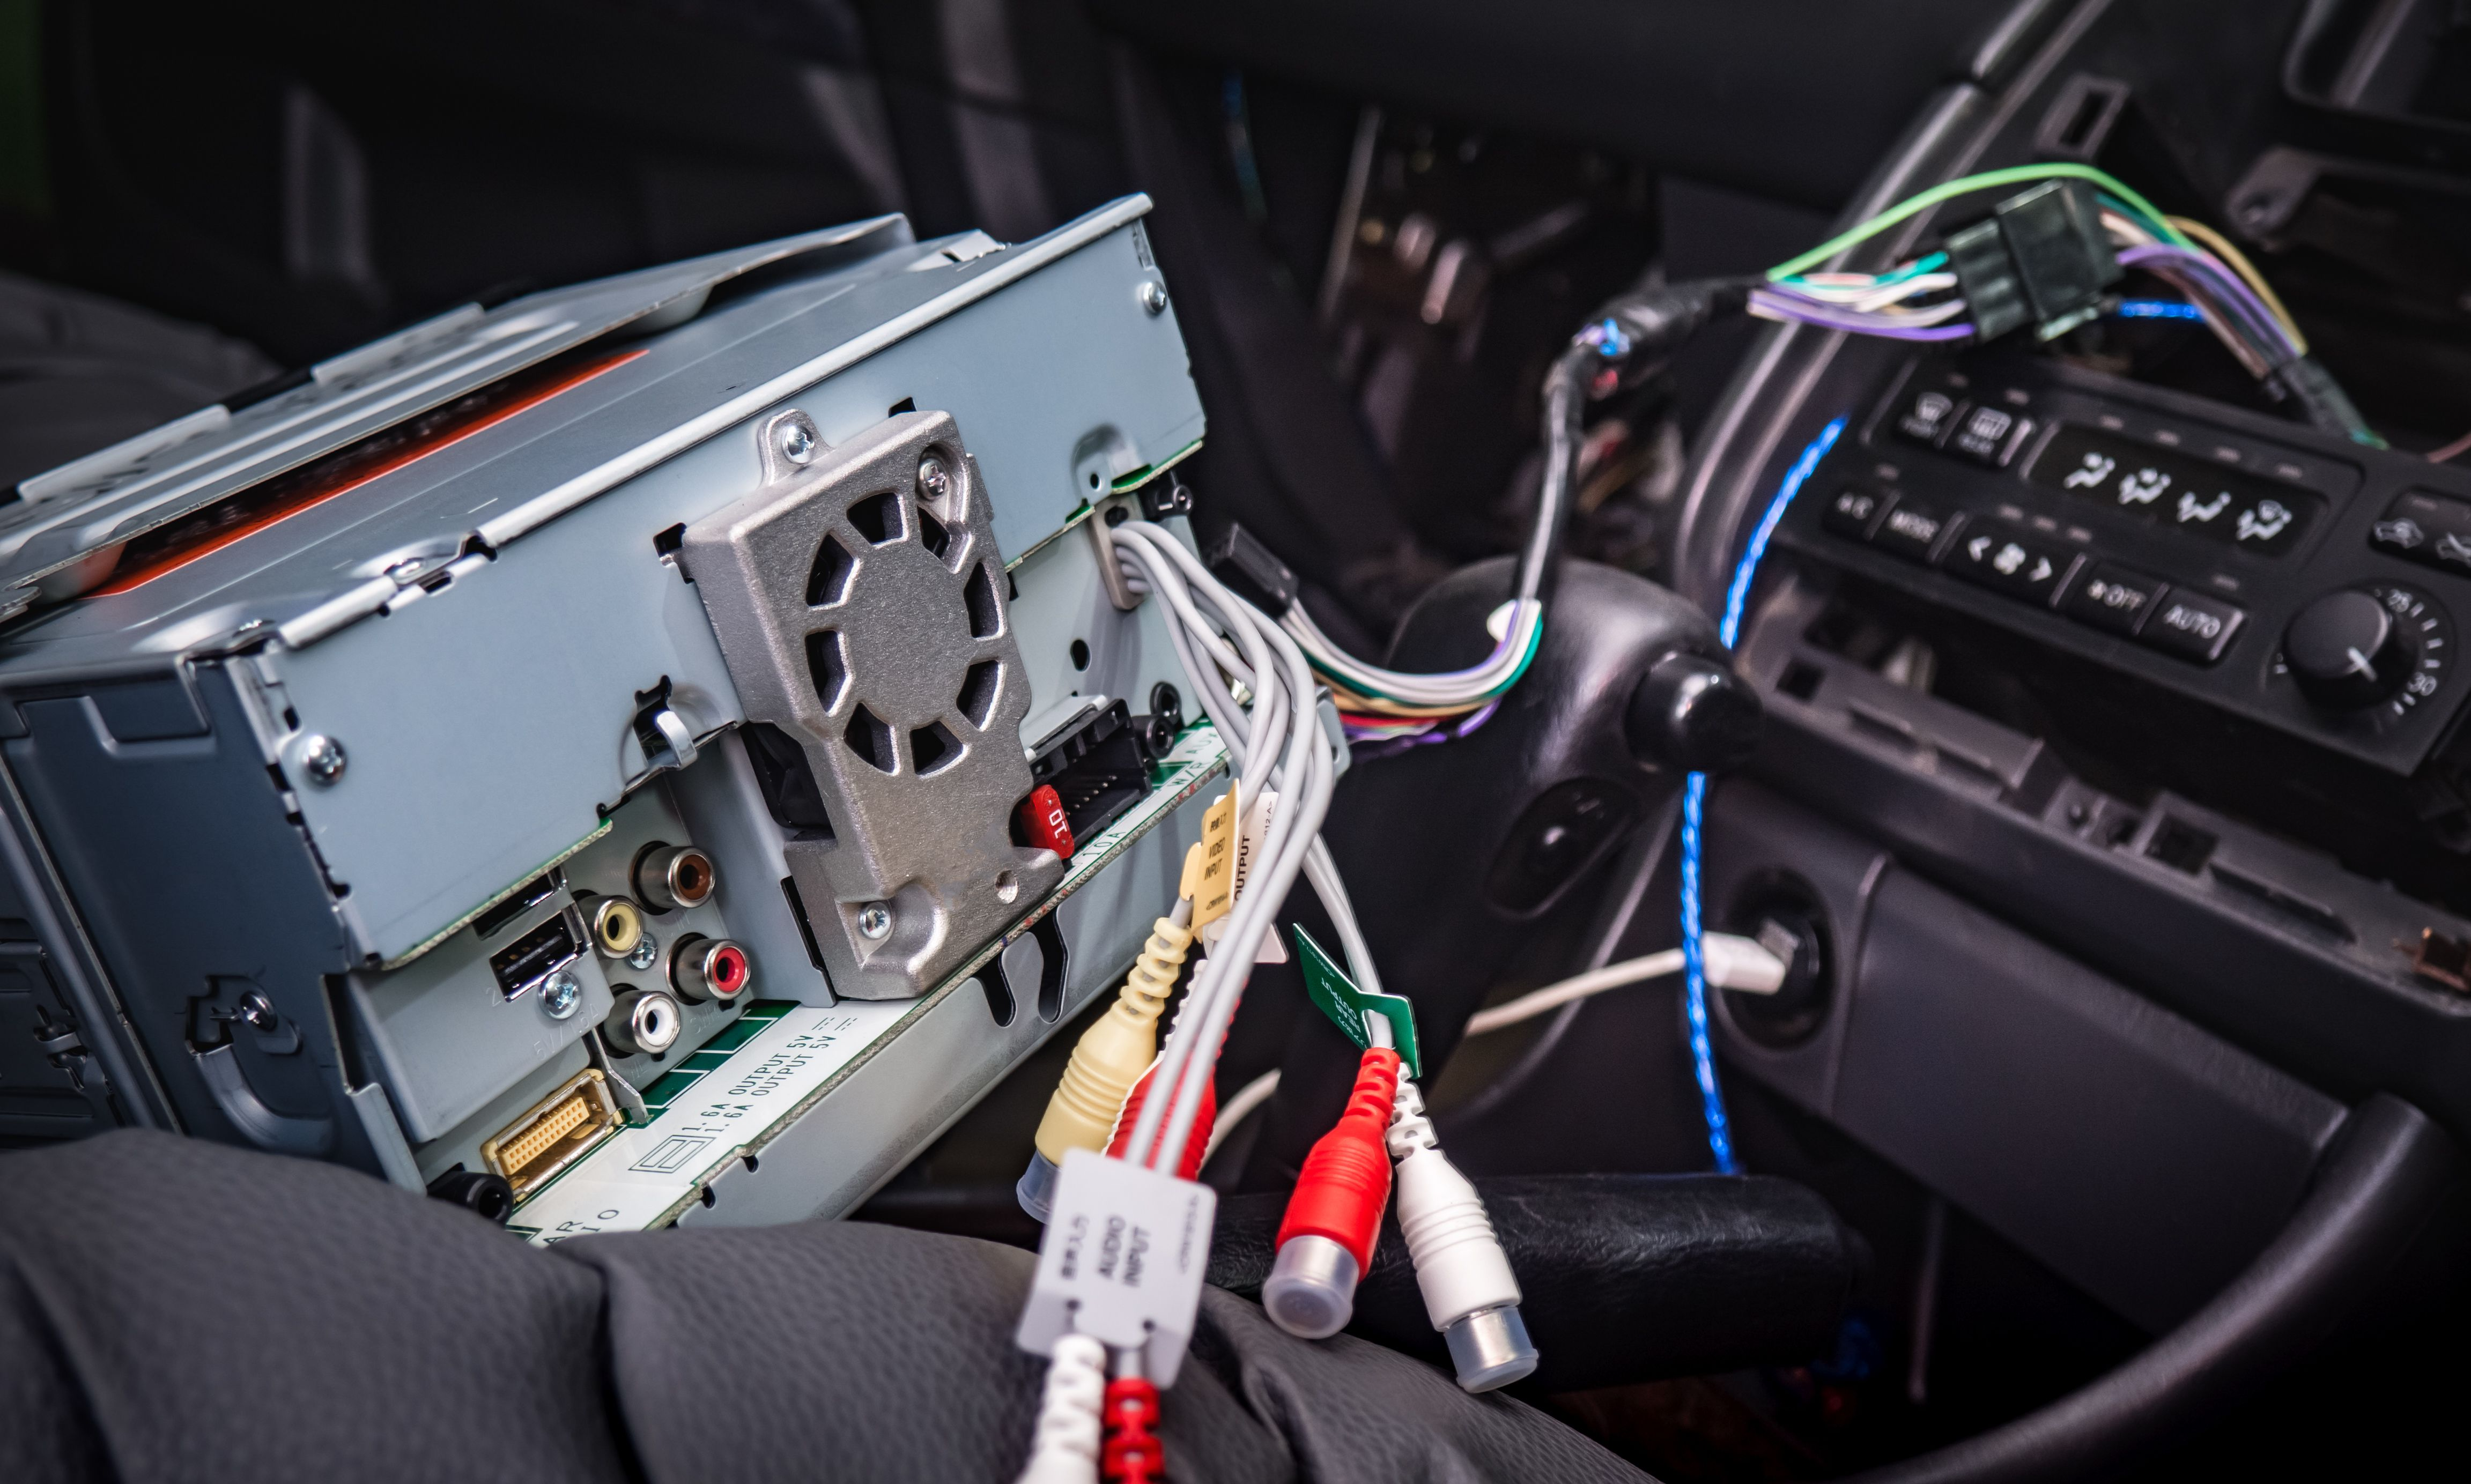 2005 mustang gt fuse box diagram ground wires and install your own car stereo  ground wires and install your own car stereo